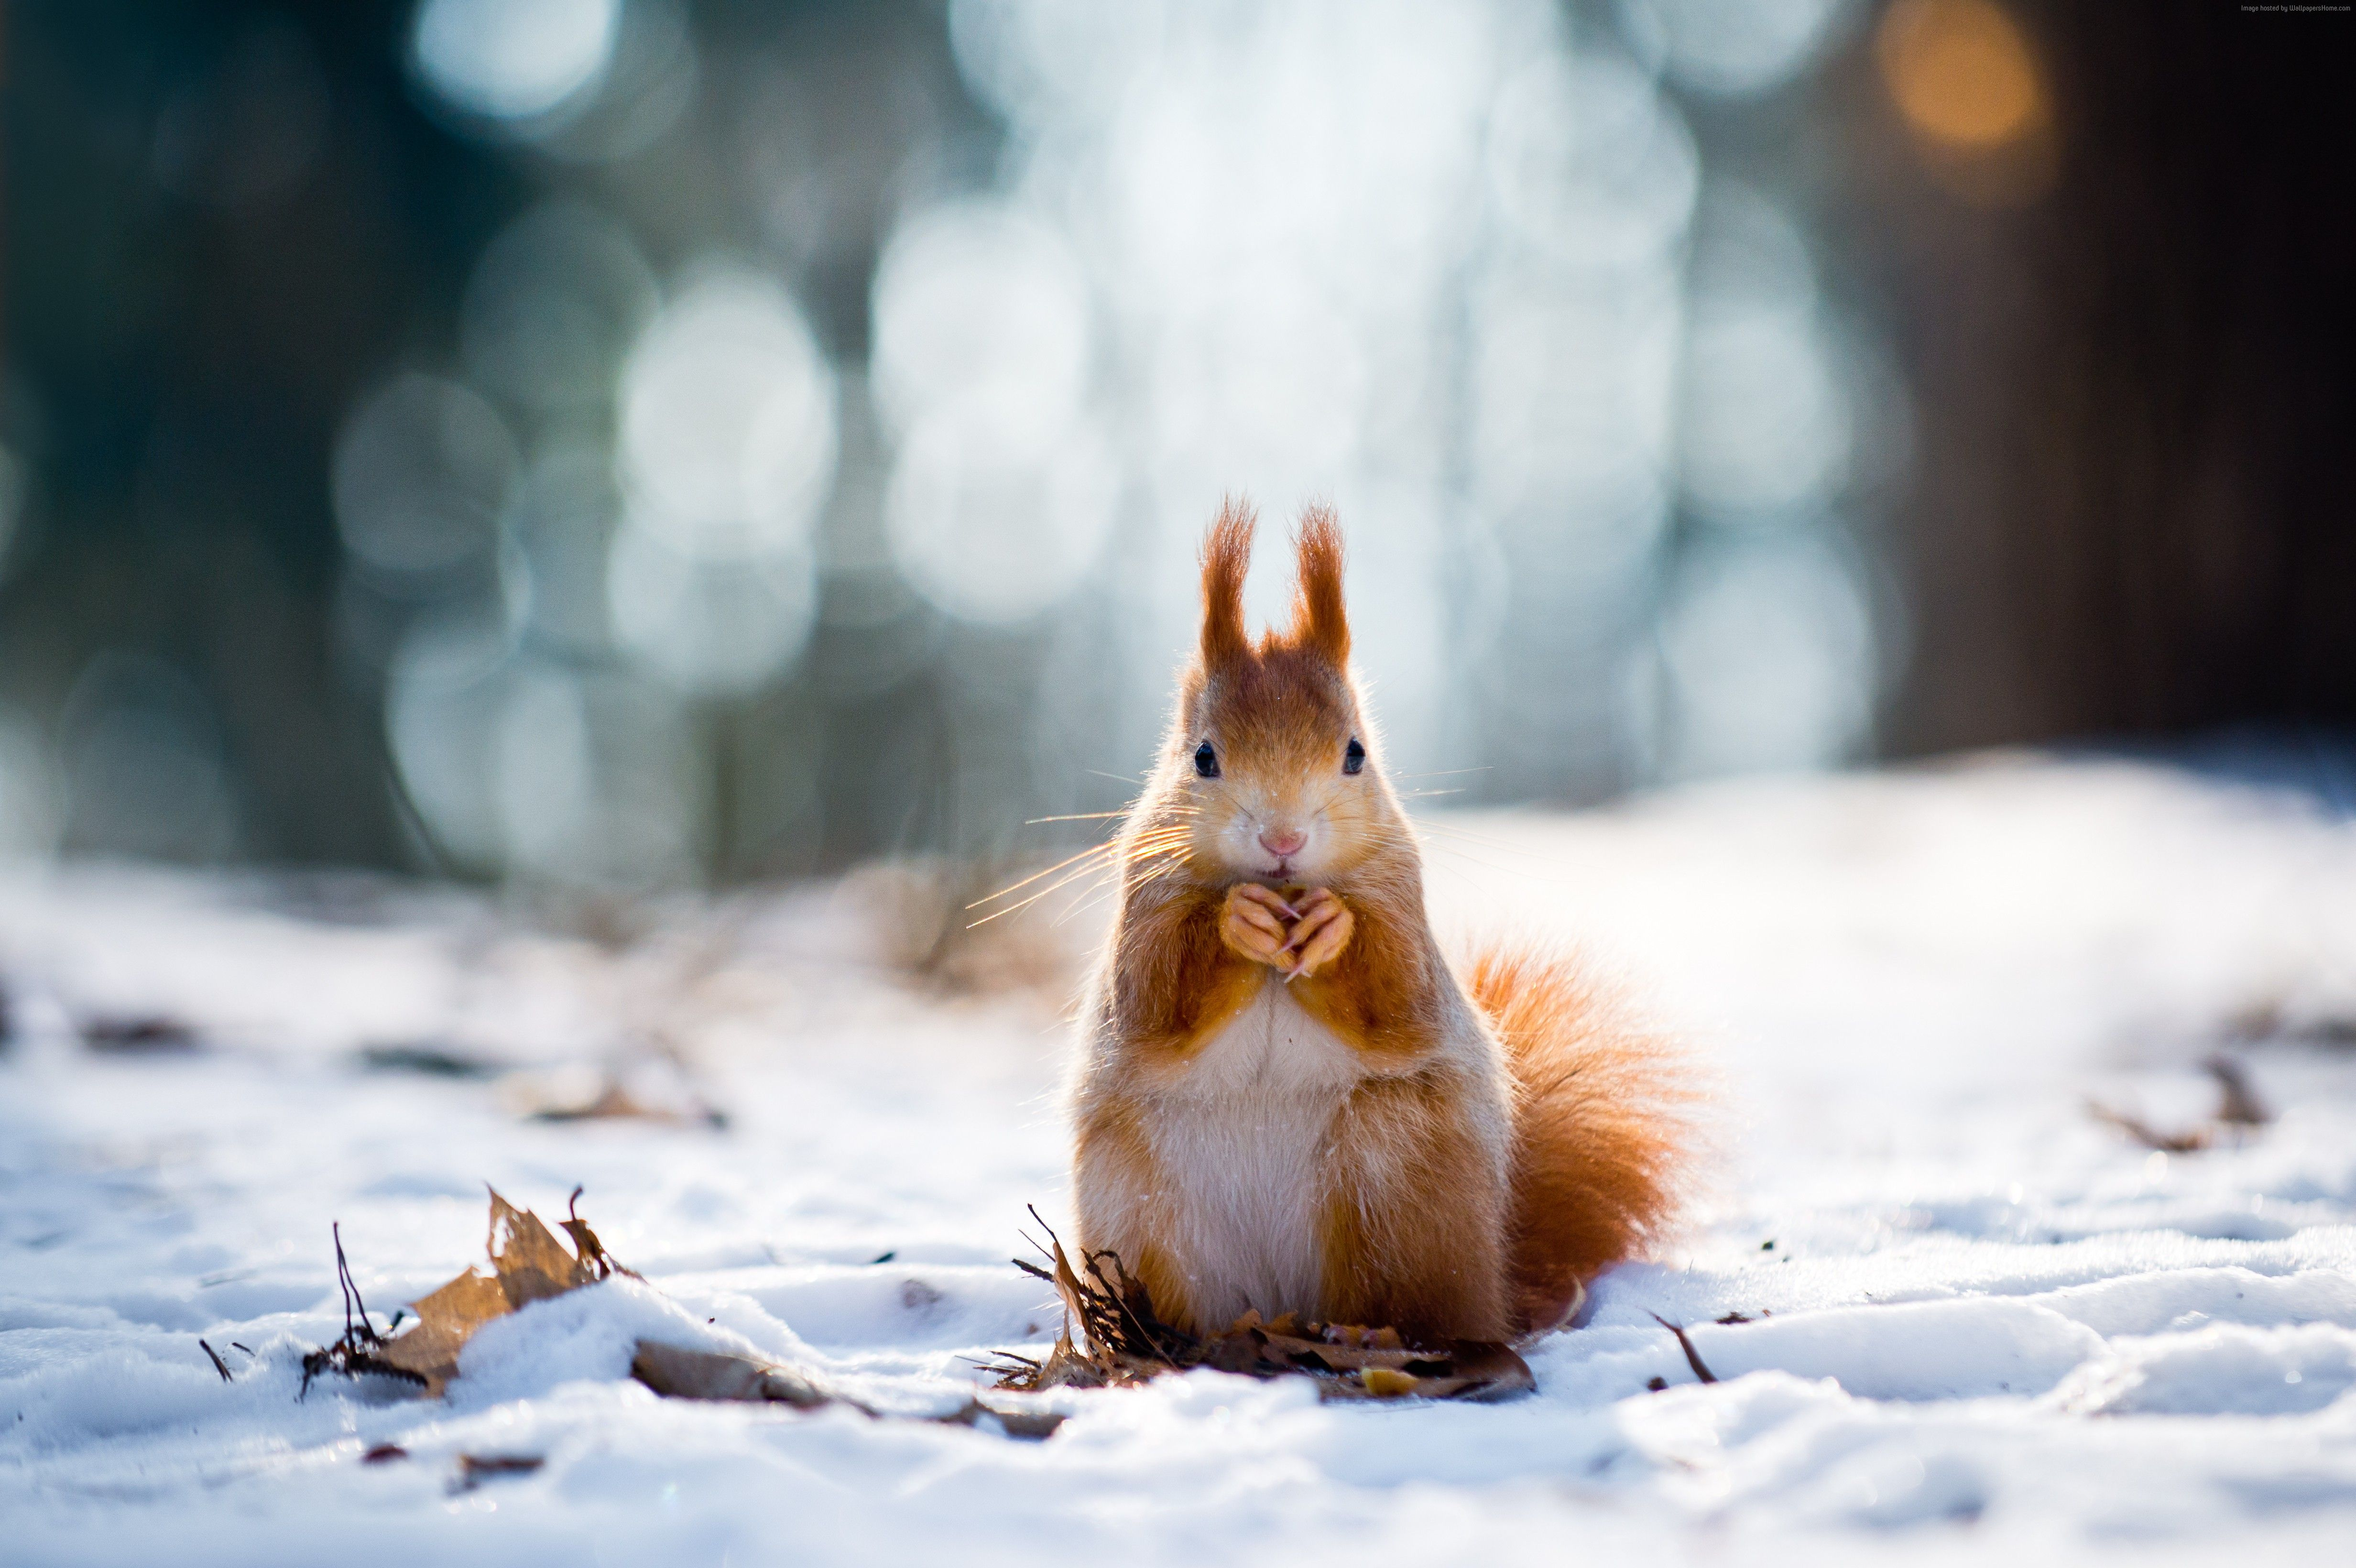 snow animals animal winter cute backgrounds wallpapers 4k wallpaperaccess squirrel